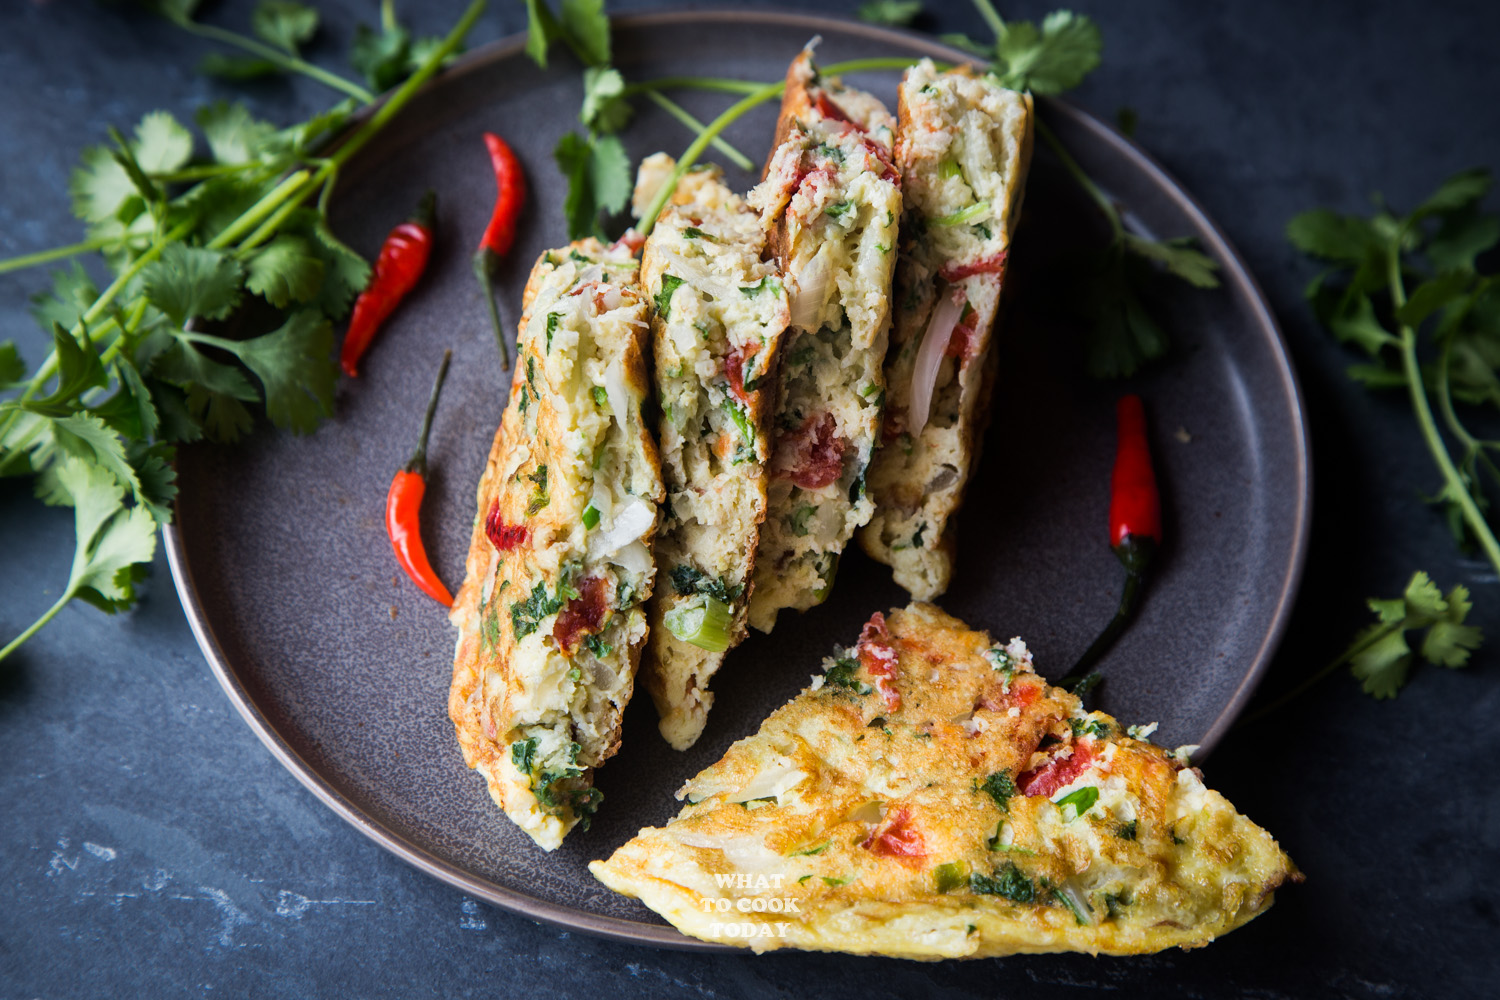 Dadar telur Padang (Indonesian thick omelette) in horizontal orientation